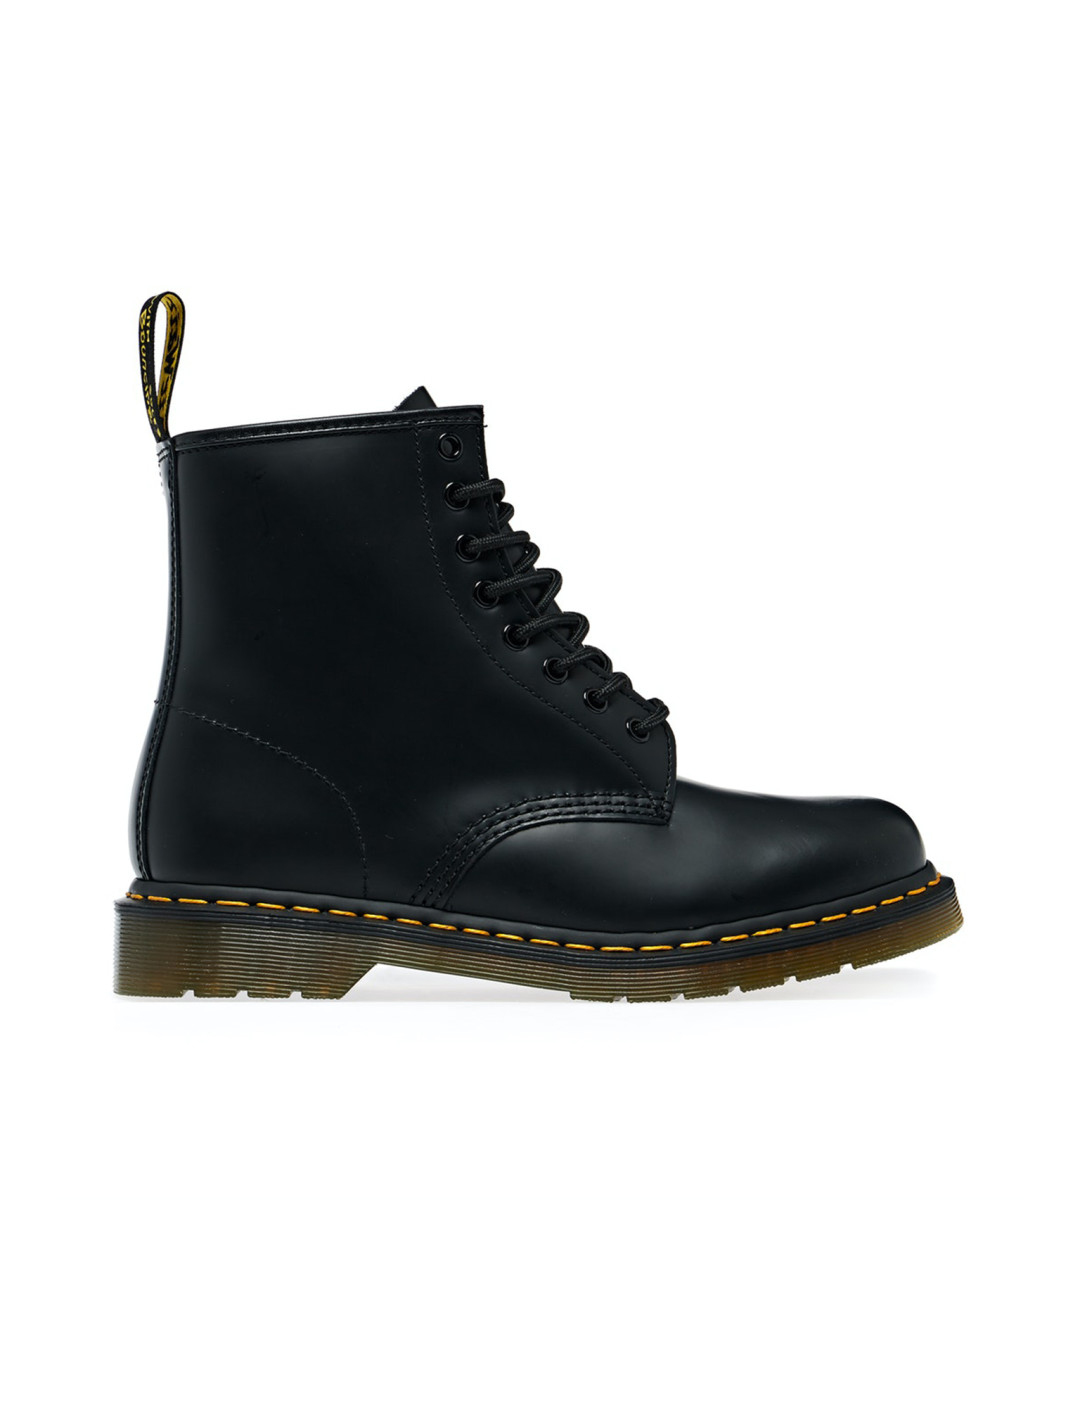 Smooth 1460 8-Eye Boots